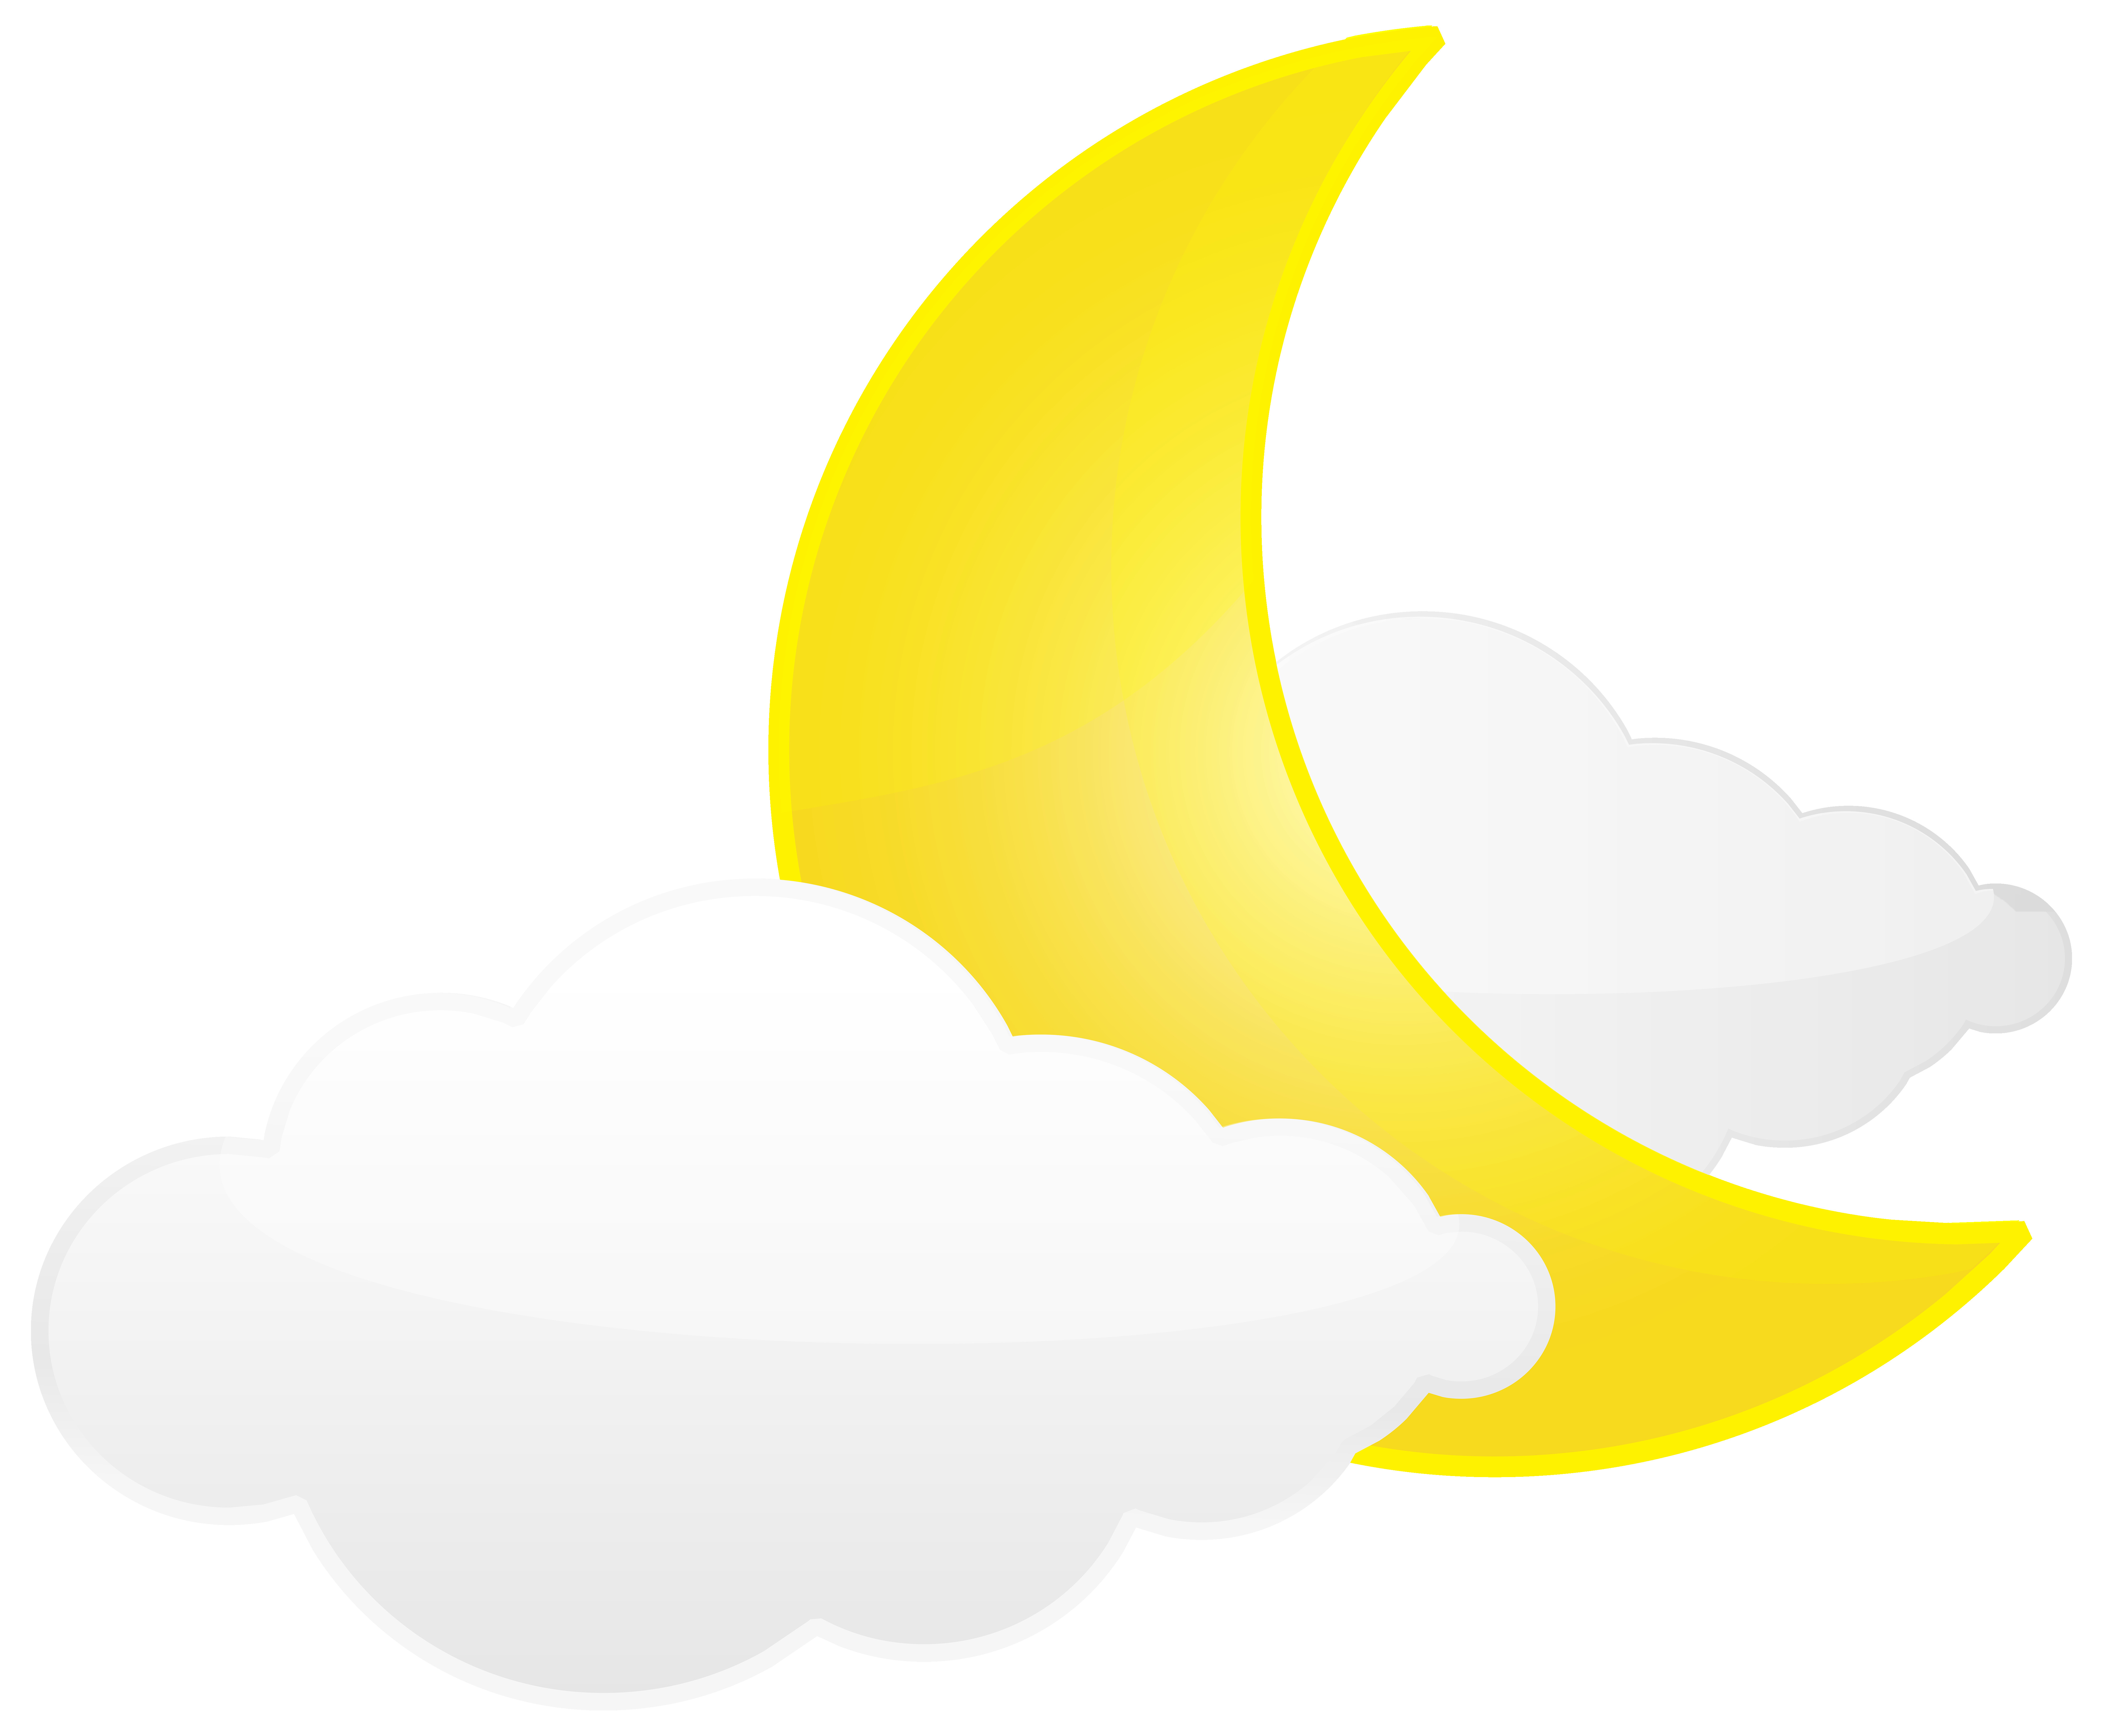 8000x6604 Cloud And Moon Weather Icon Png Clip Art Best Web Clipart Ripping